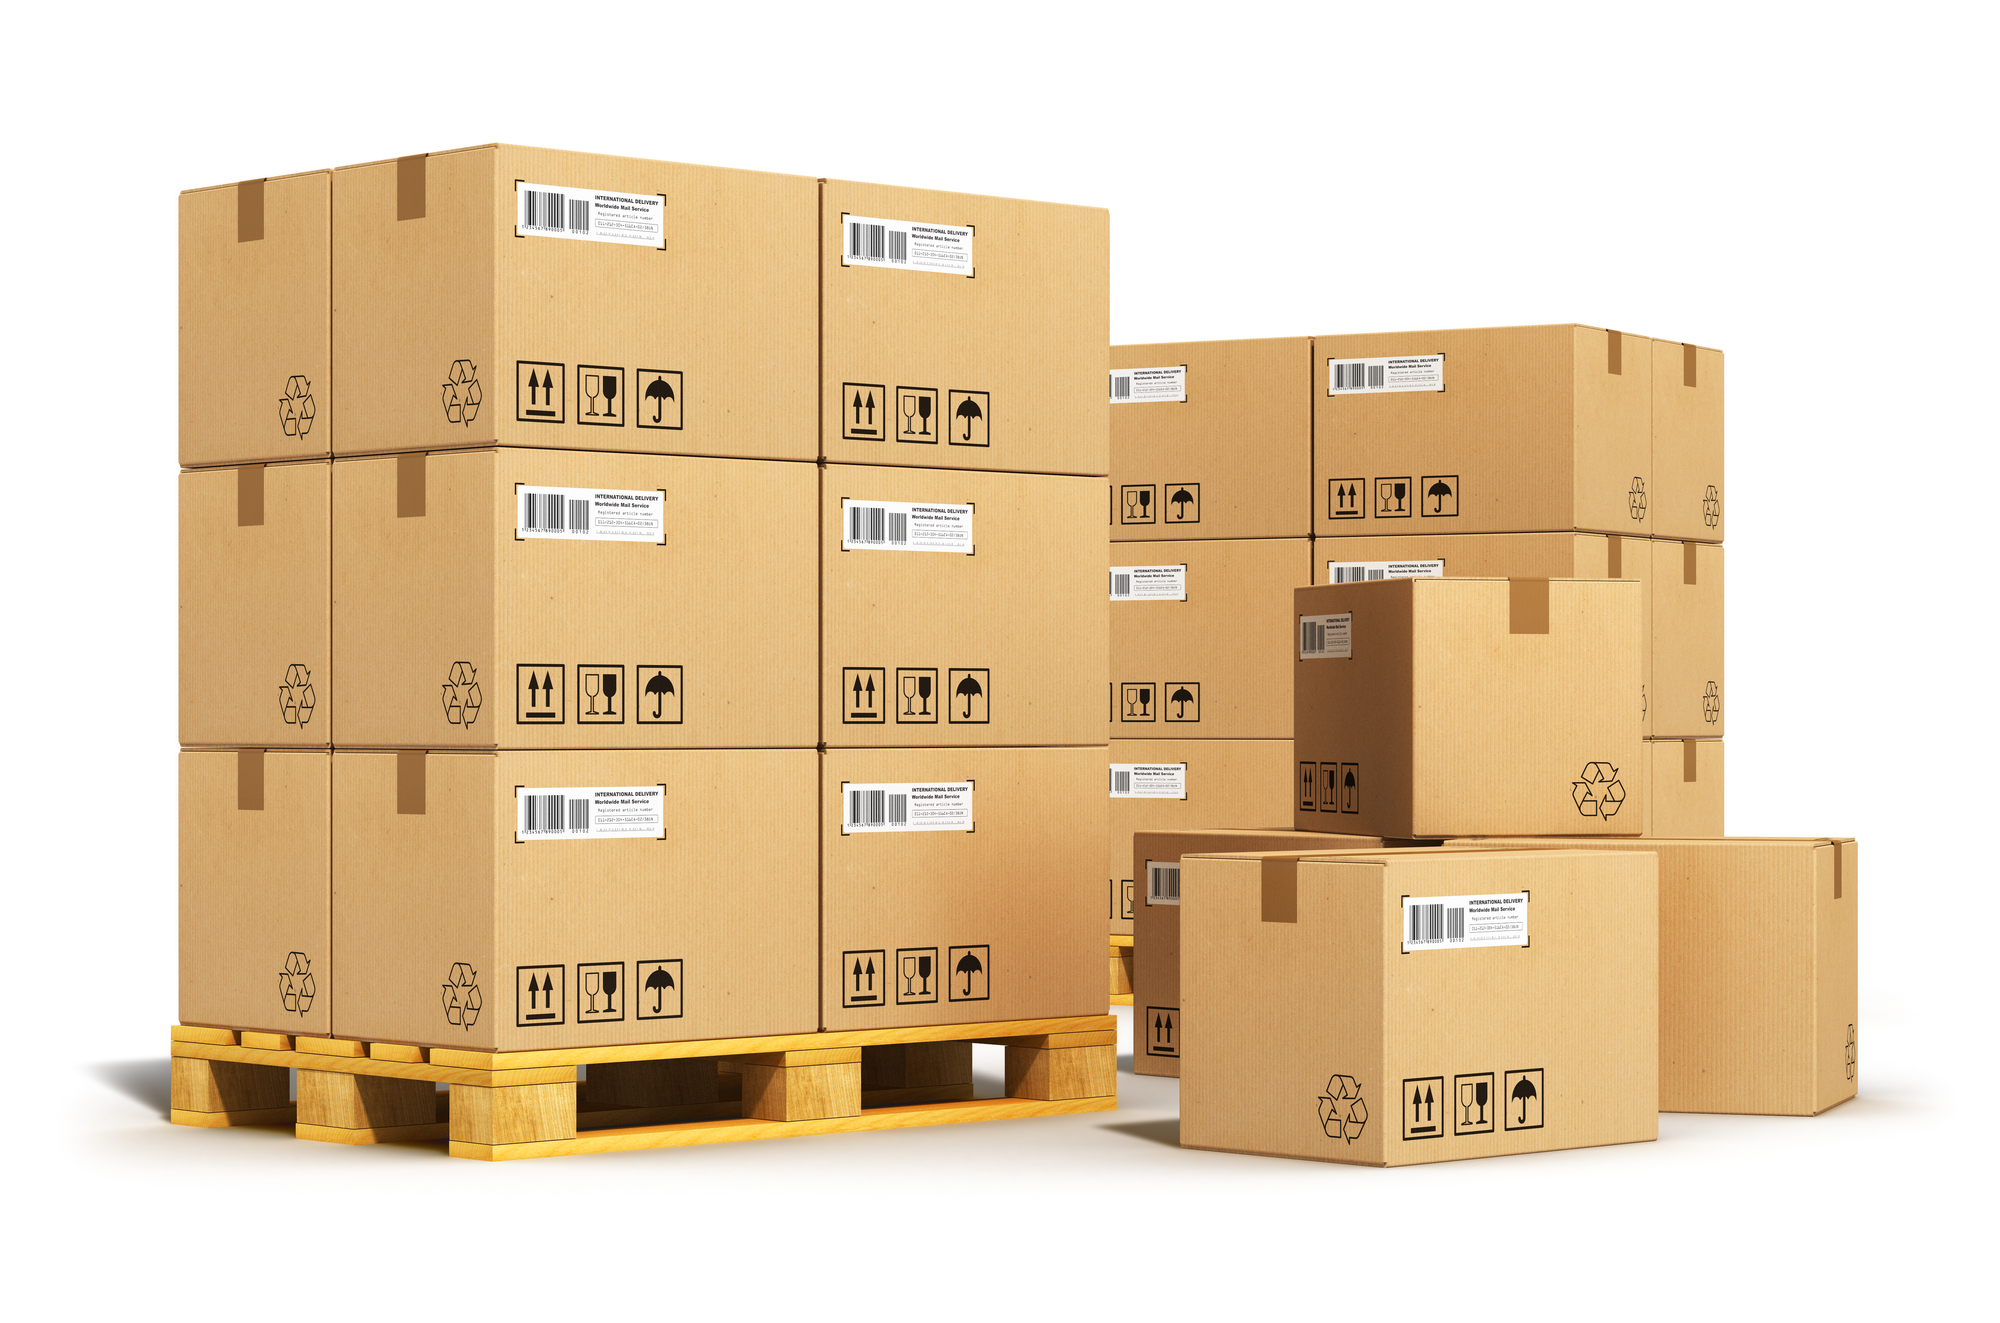 Boxed goods are loaded onto a pallet